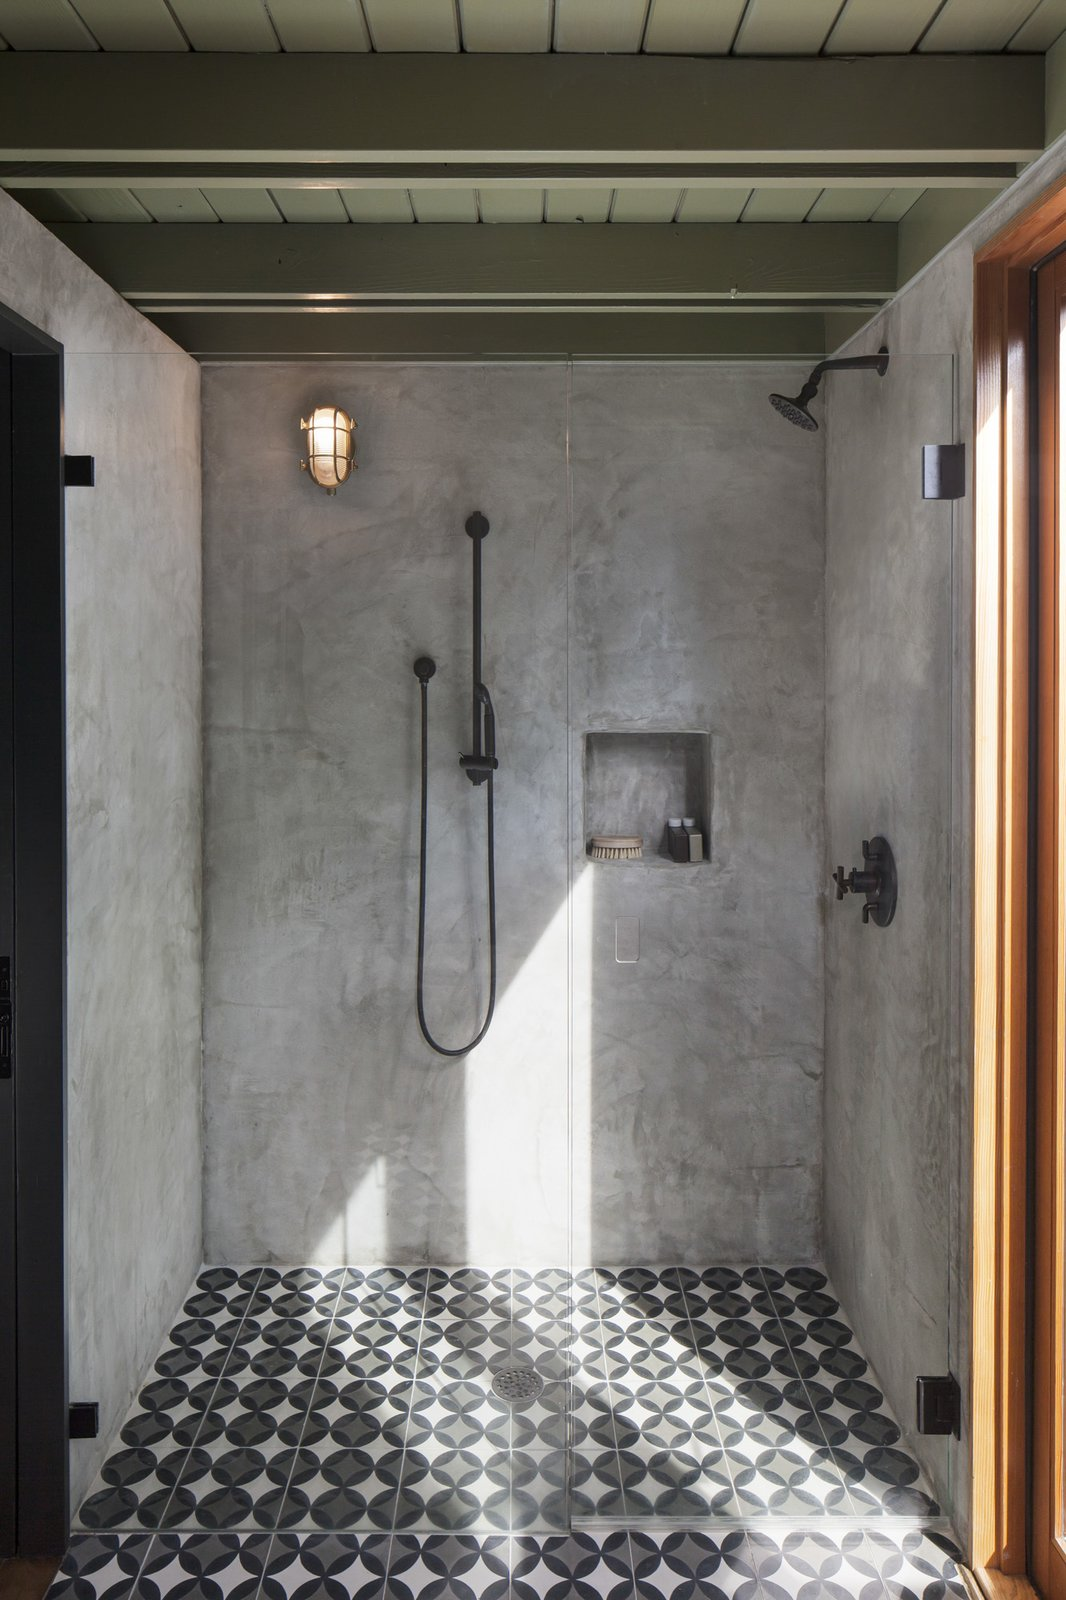 The concrete tile transitions into the plaster shower for a seamless look. Tagged: Bath Room, Cement Tile Floor, Wall Lighting, Full Shower, and Enclosed Shower.  Bathe by Jackie Antig from Garner Pool & Casita